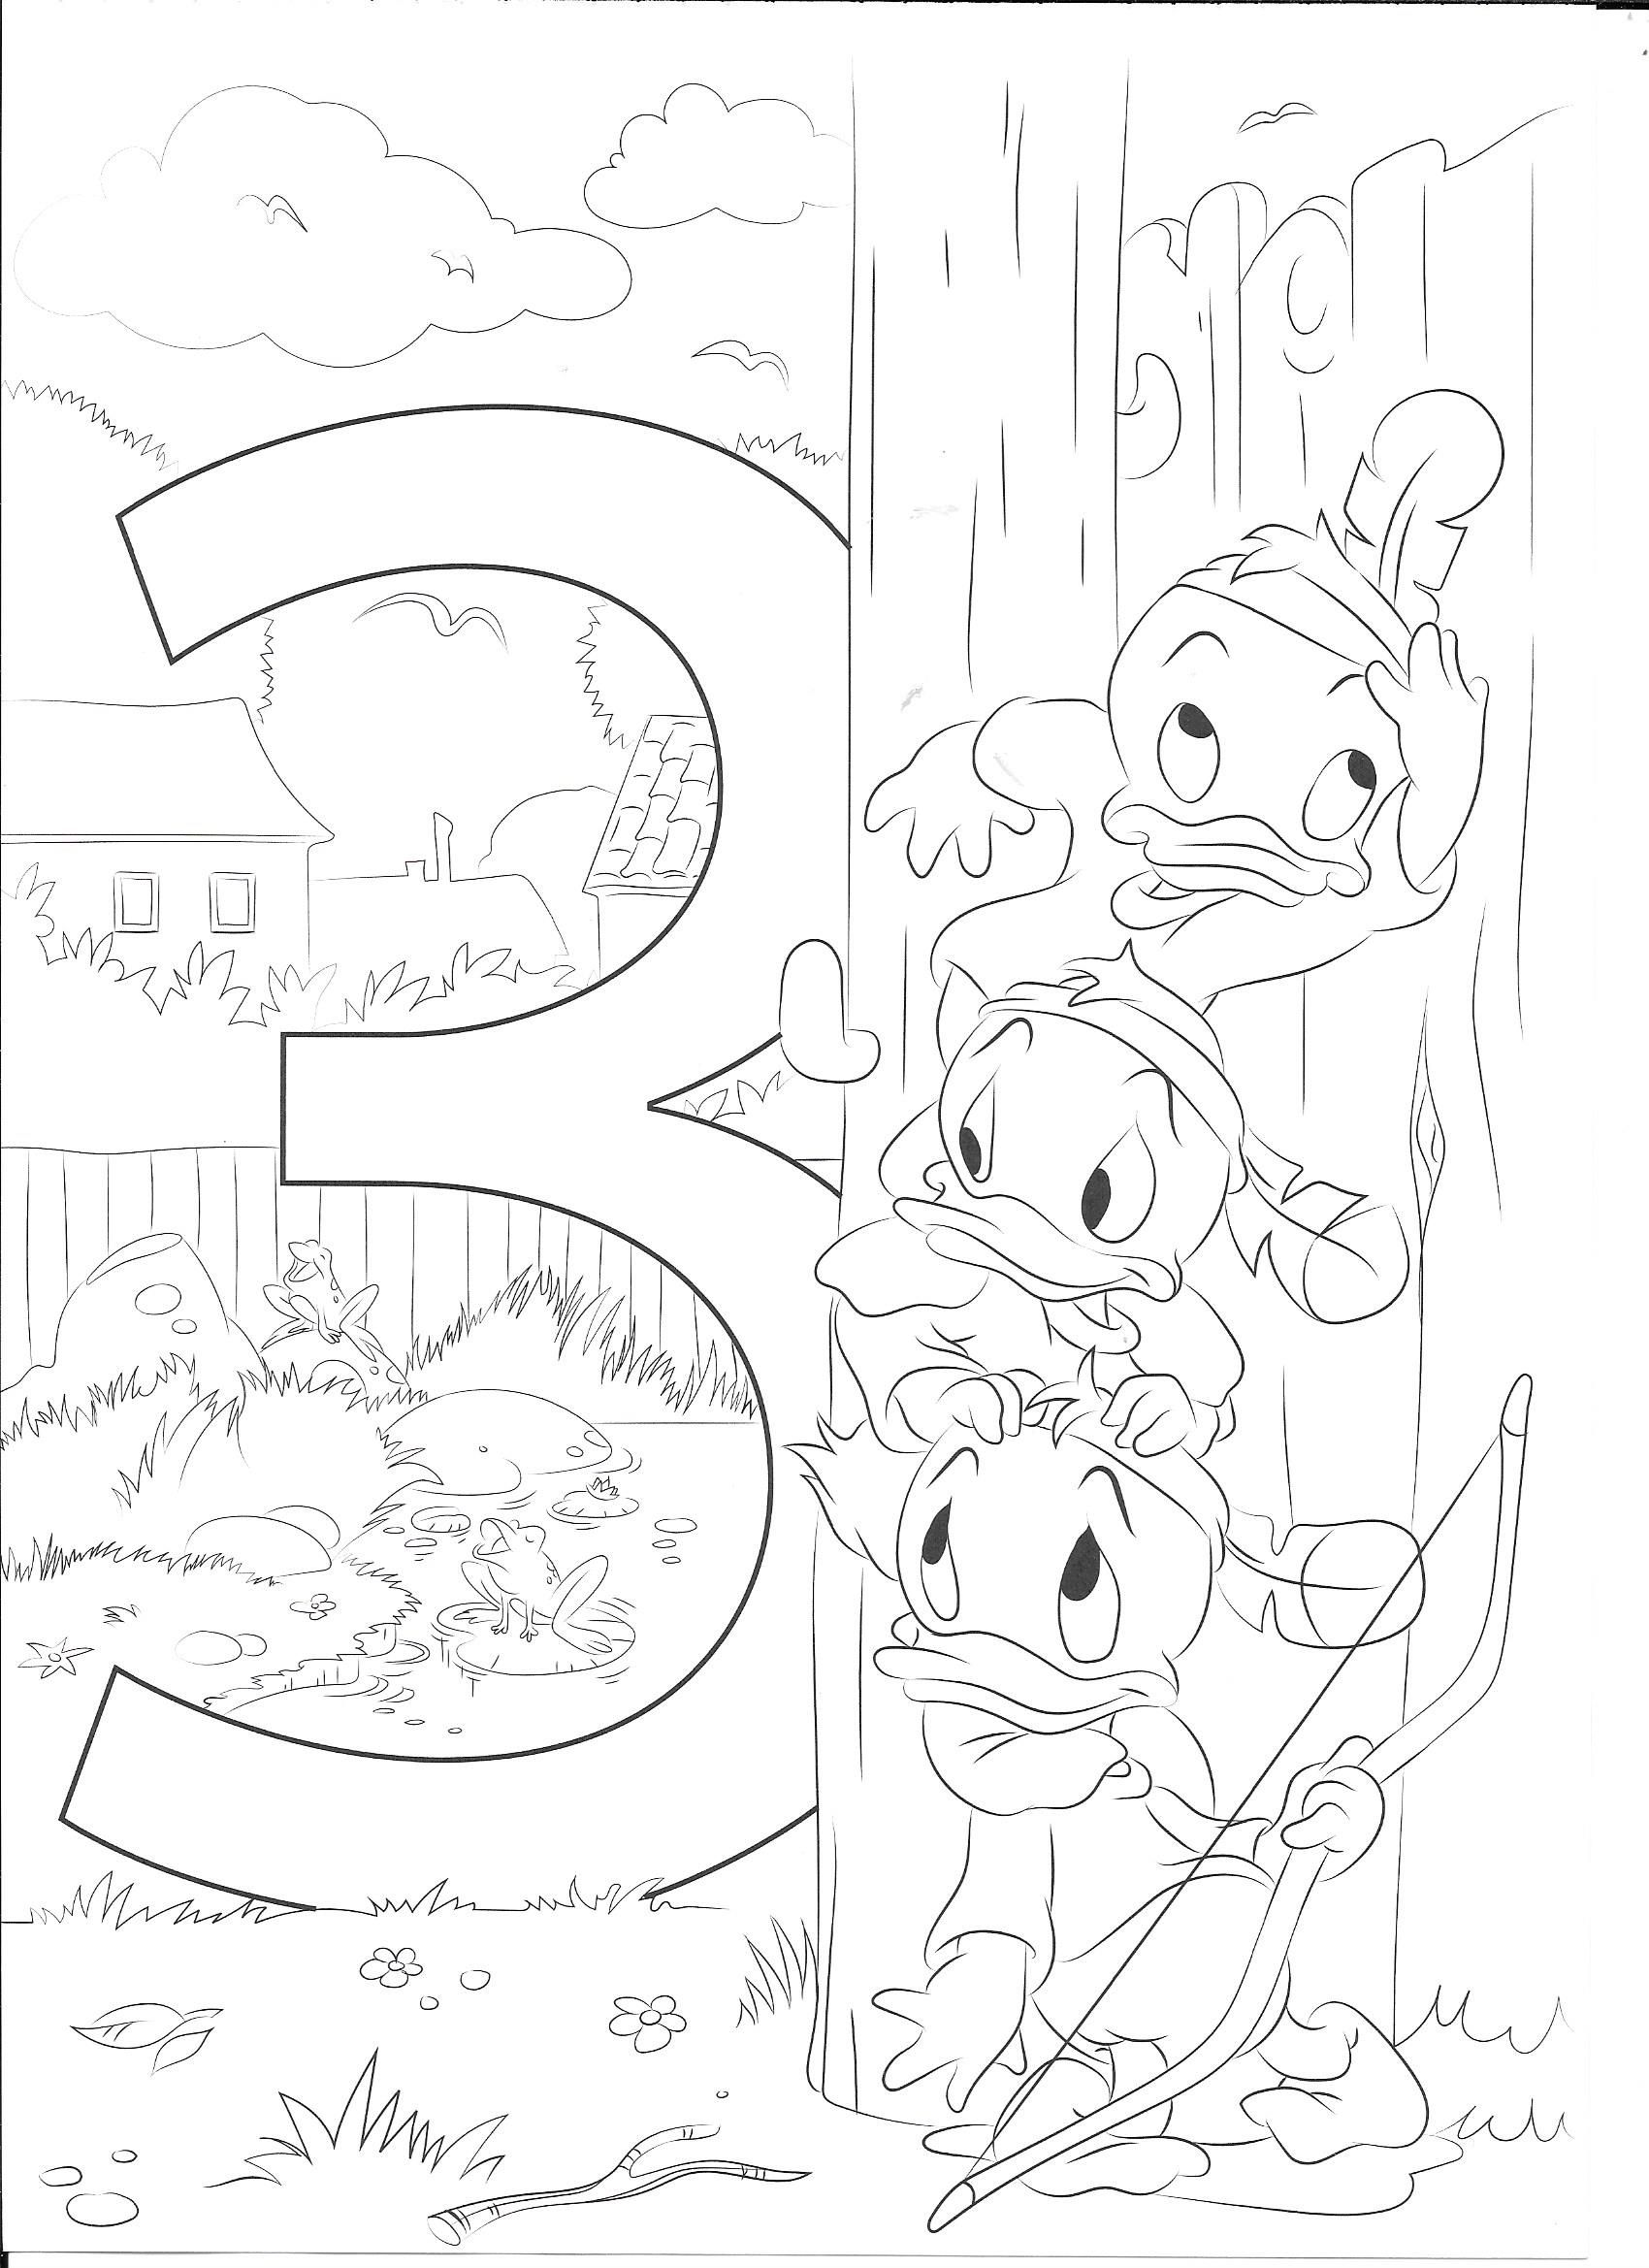 Coloring  Alphabet coloring pages, Abc coloring pages, Abc coloring